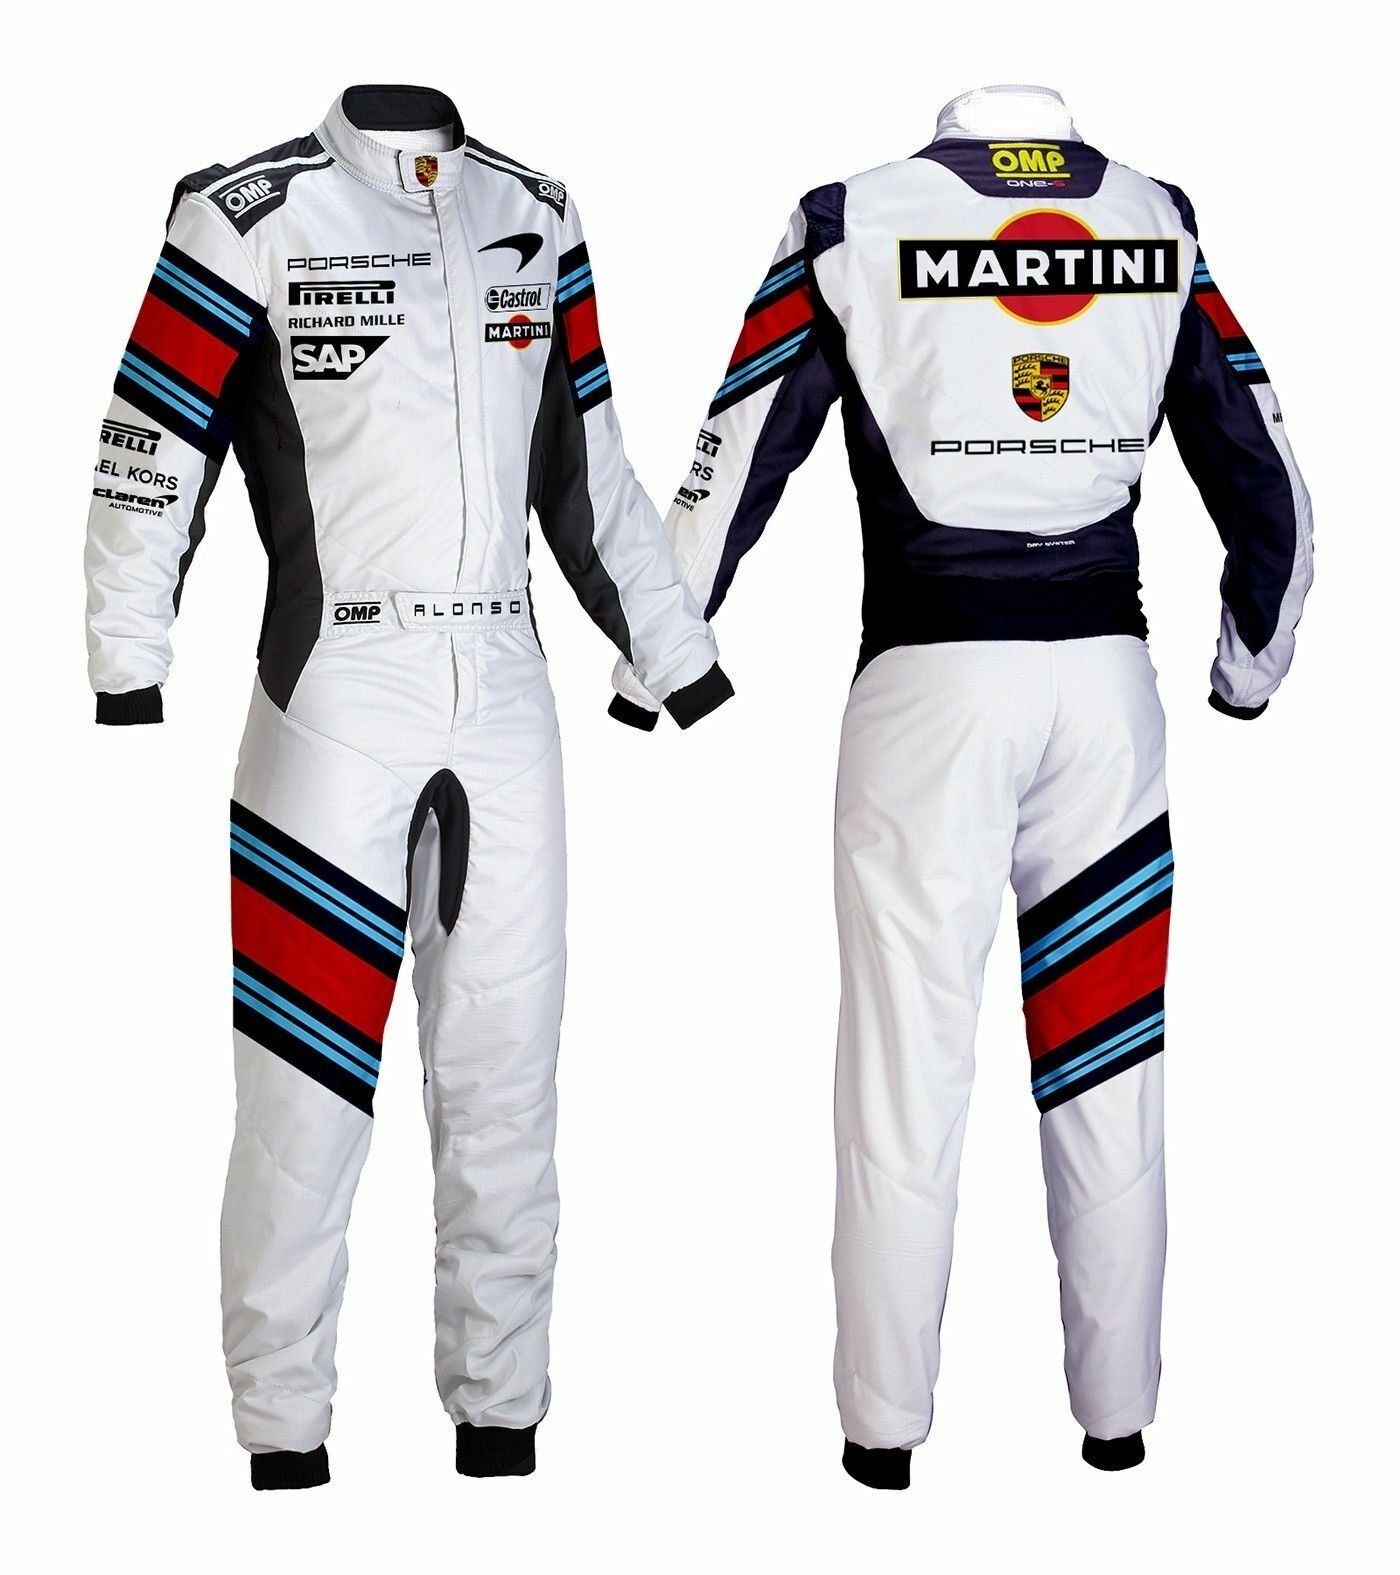 MARTINI GO KART RACING SUIT CIK FIA LEVEL  II APPROVED (SUBLIMATION PRINTING)  80% off